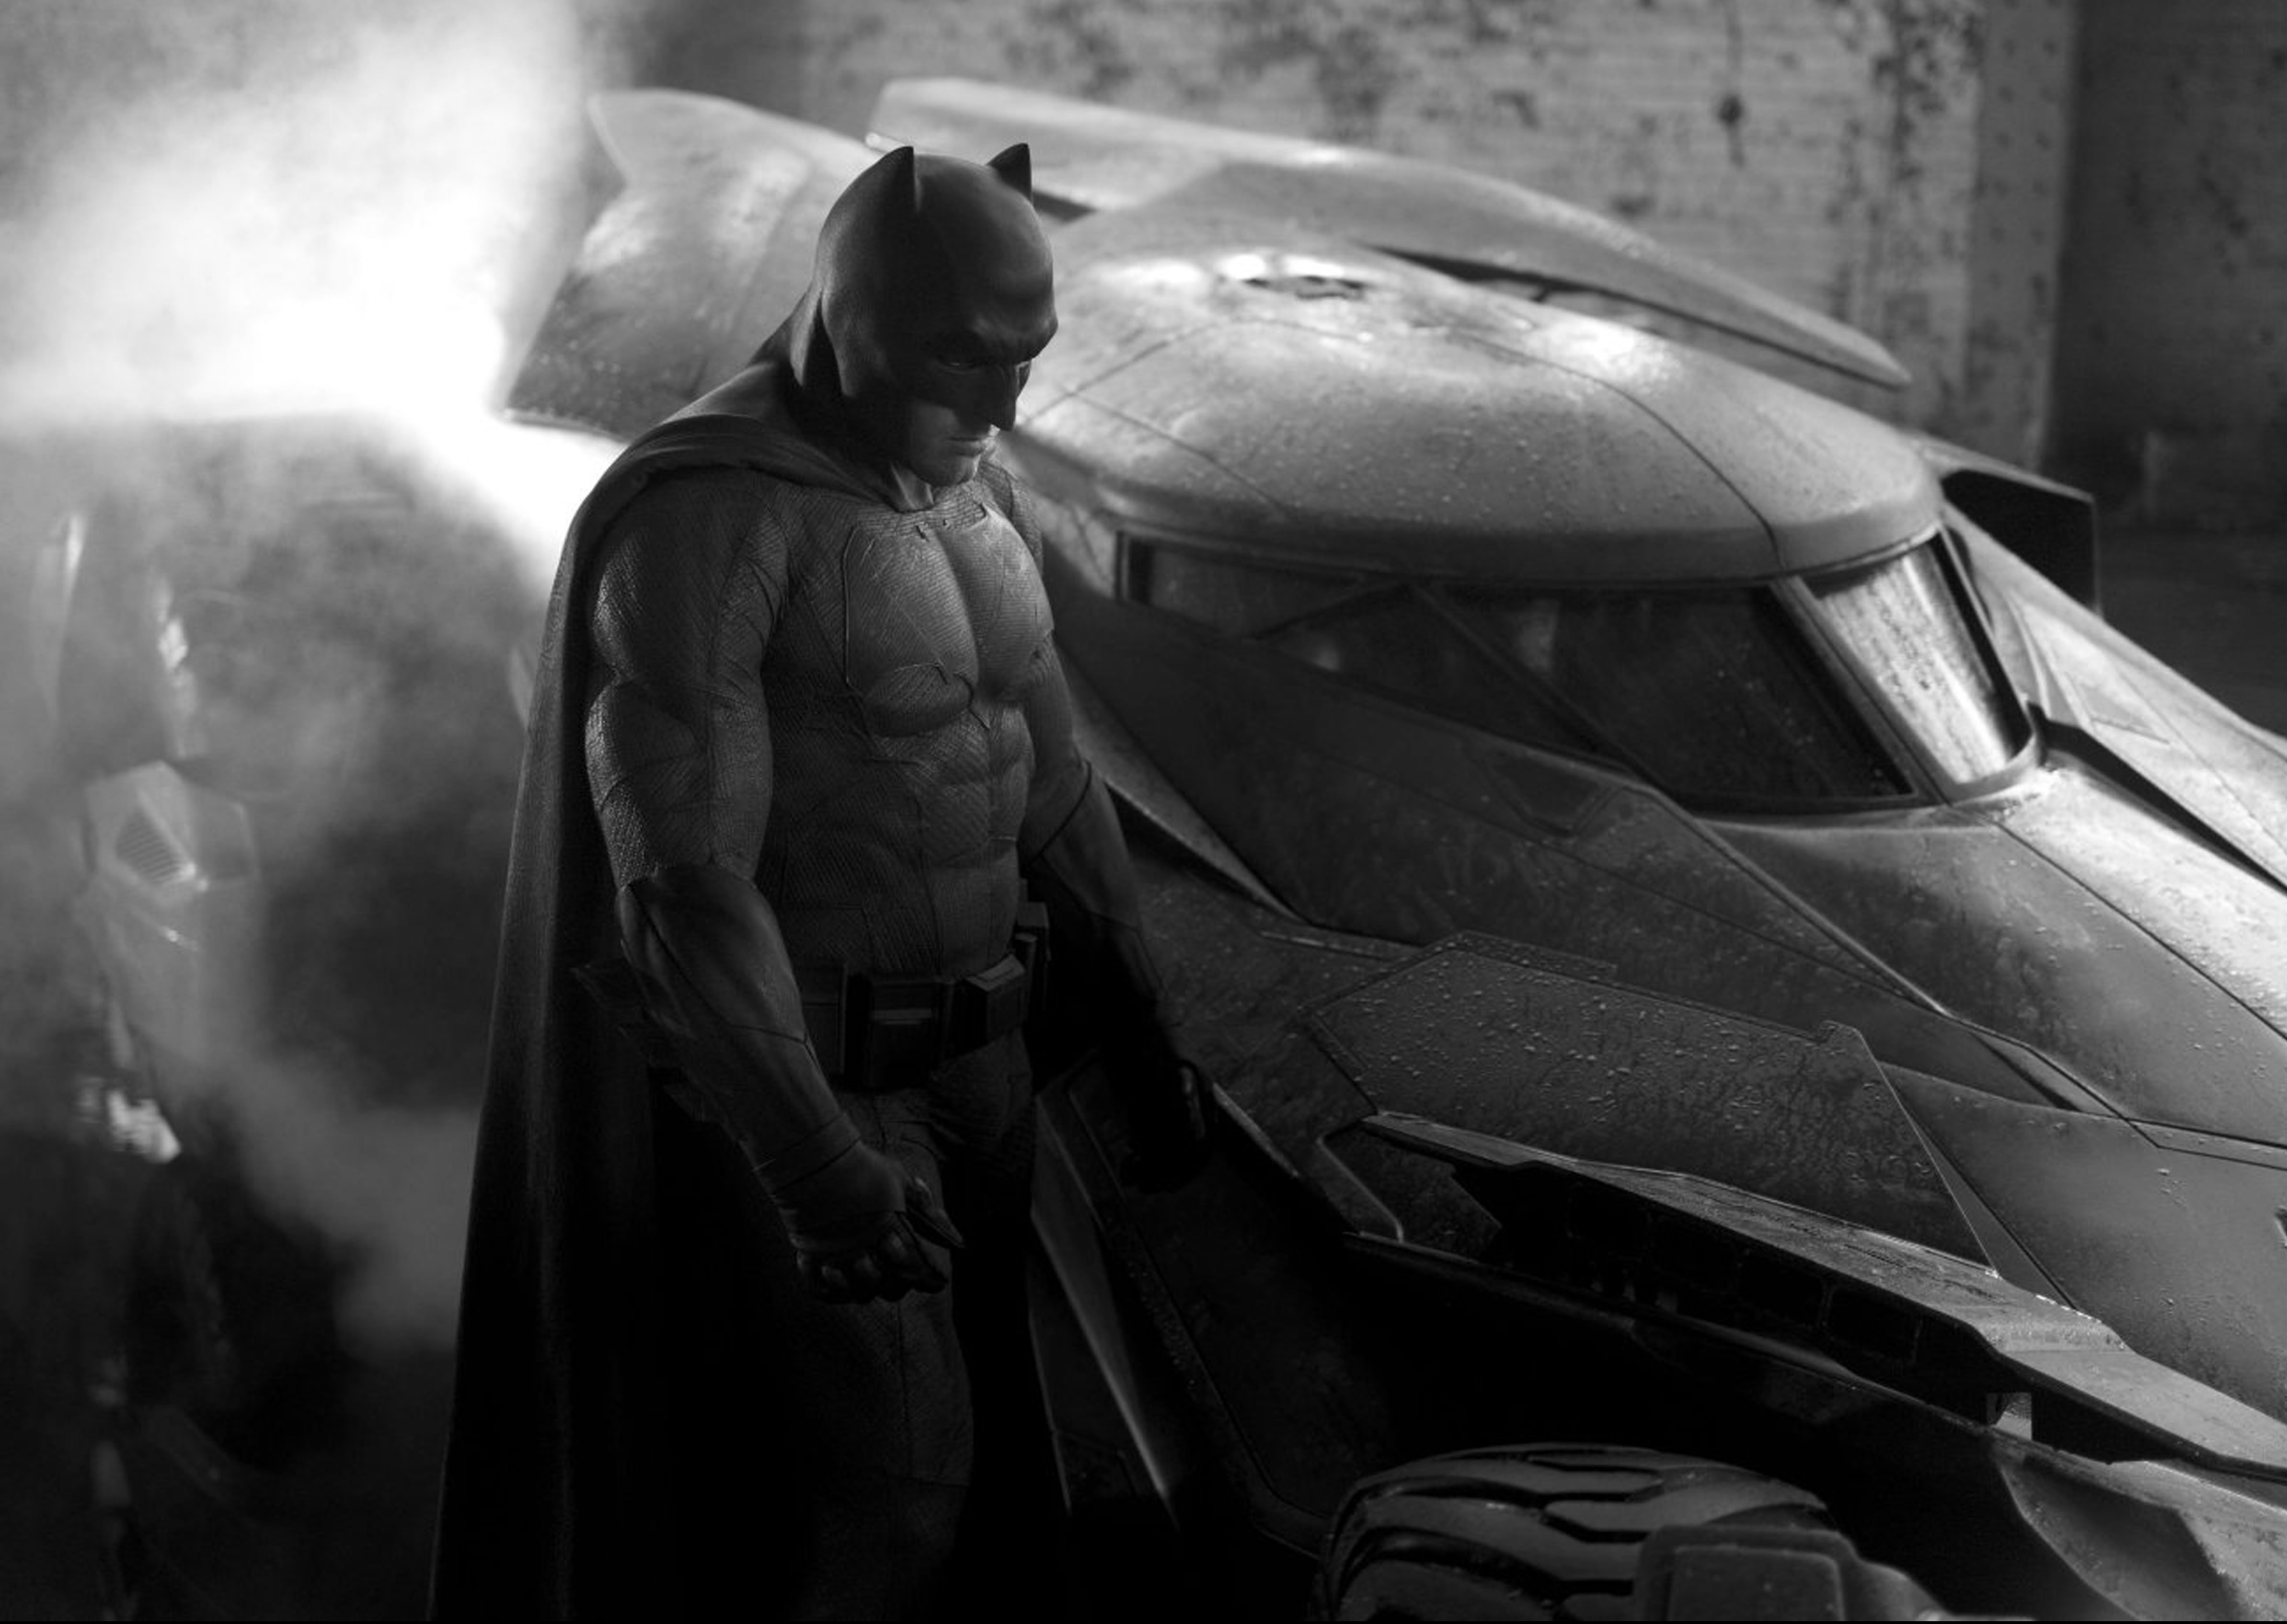 Zack Snyder shares first look at Batman's swanky new 'Tactical Batsuit' in Justice League